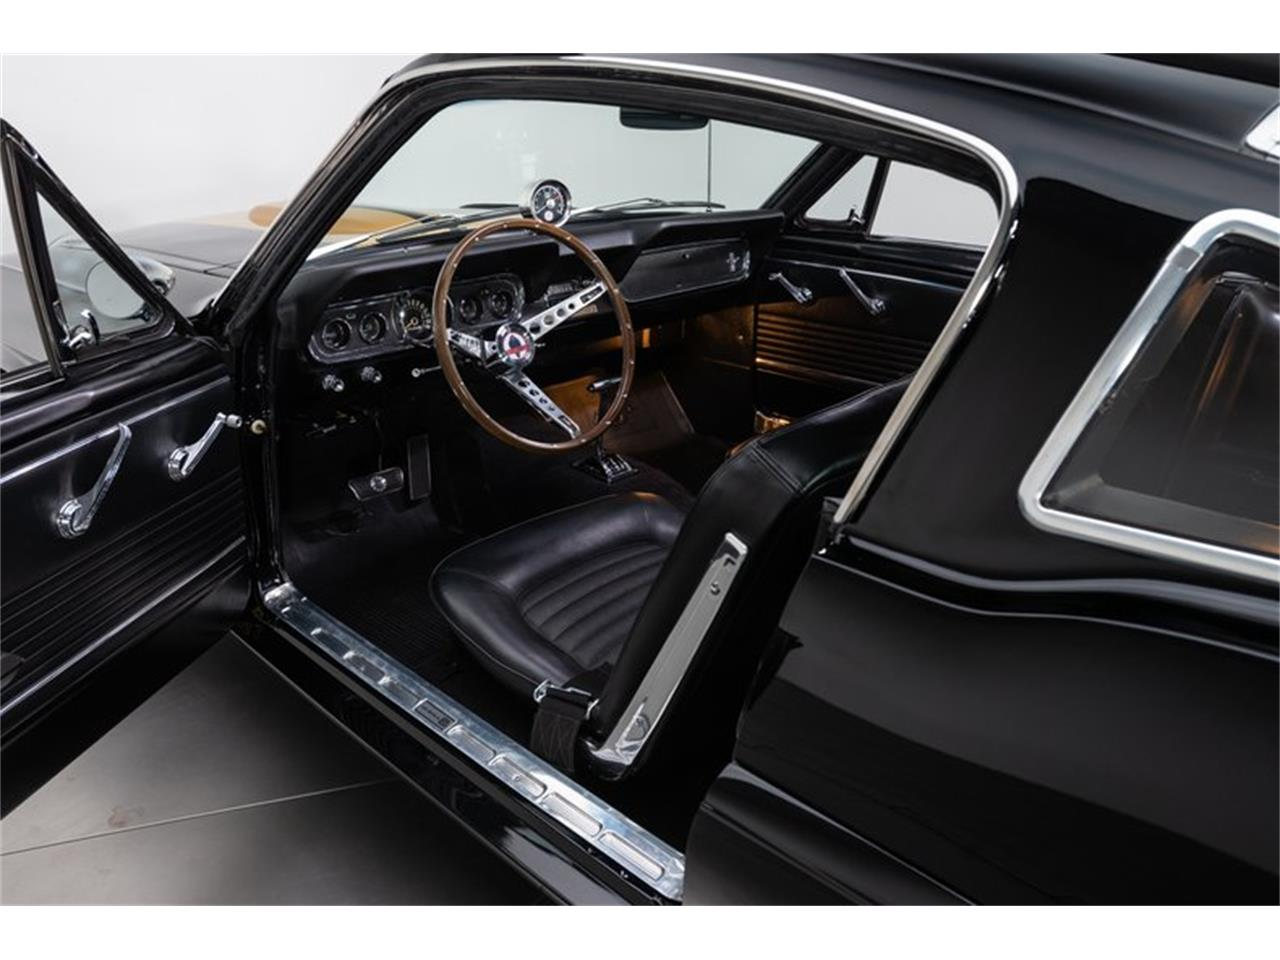 Large Picture of 1966 Mustang located in North Carolina - $189,900.00 Offered by RK Motors Charlotte - Q2WU